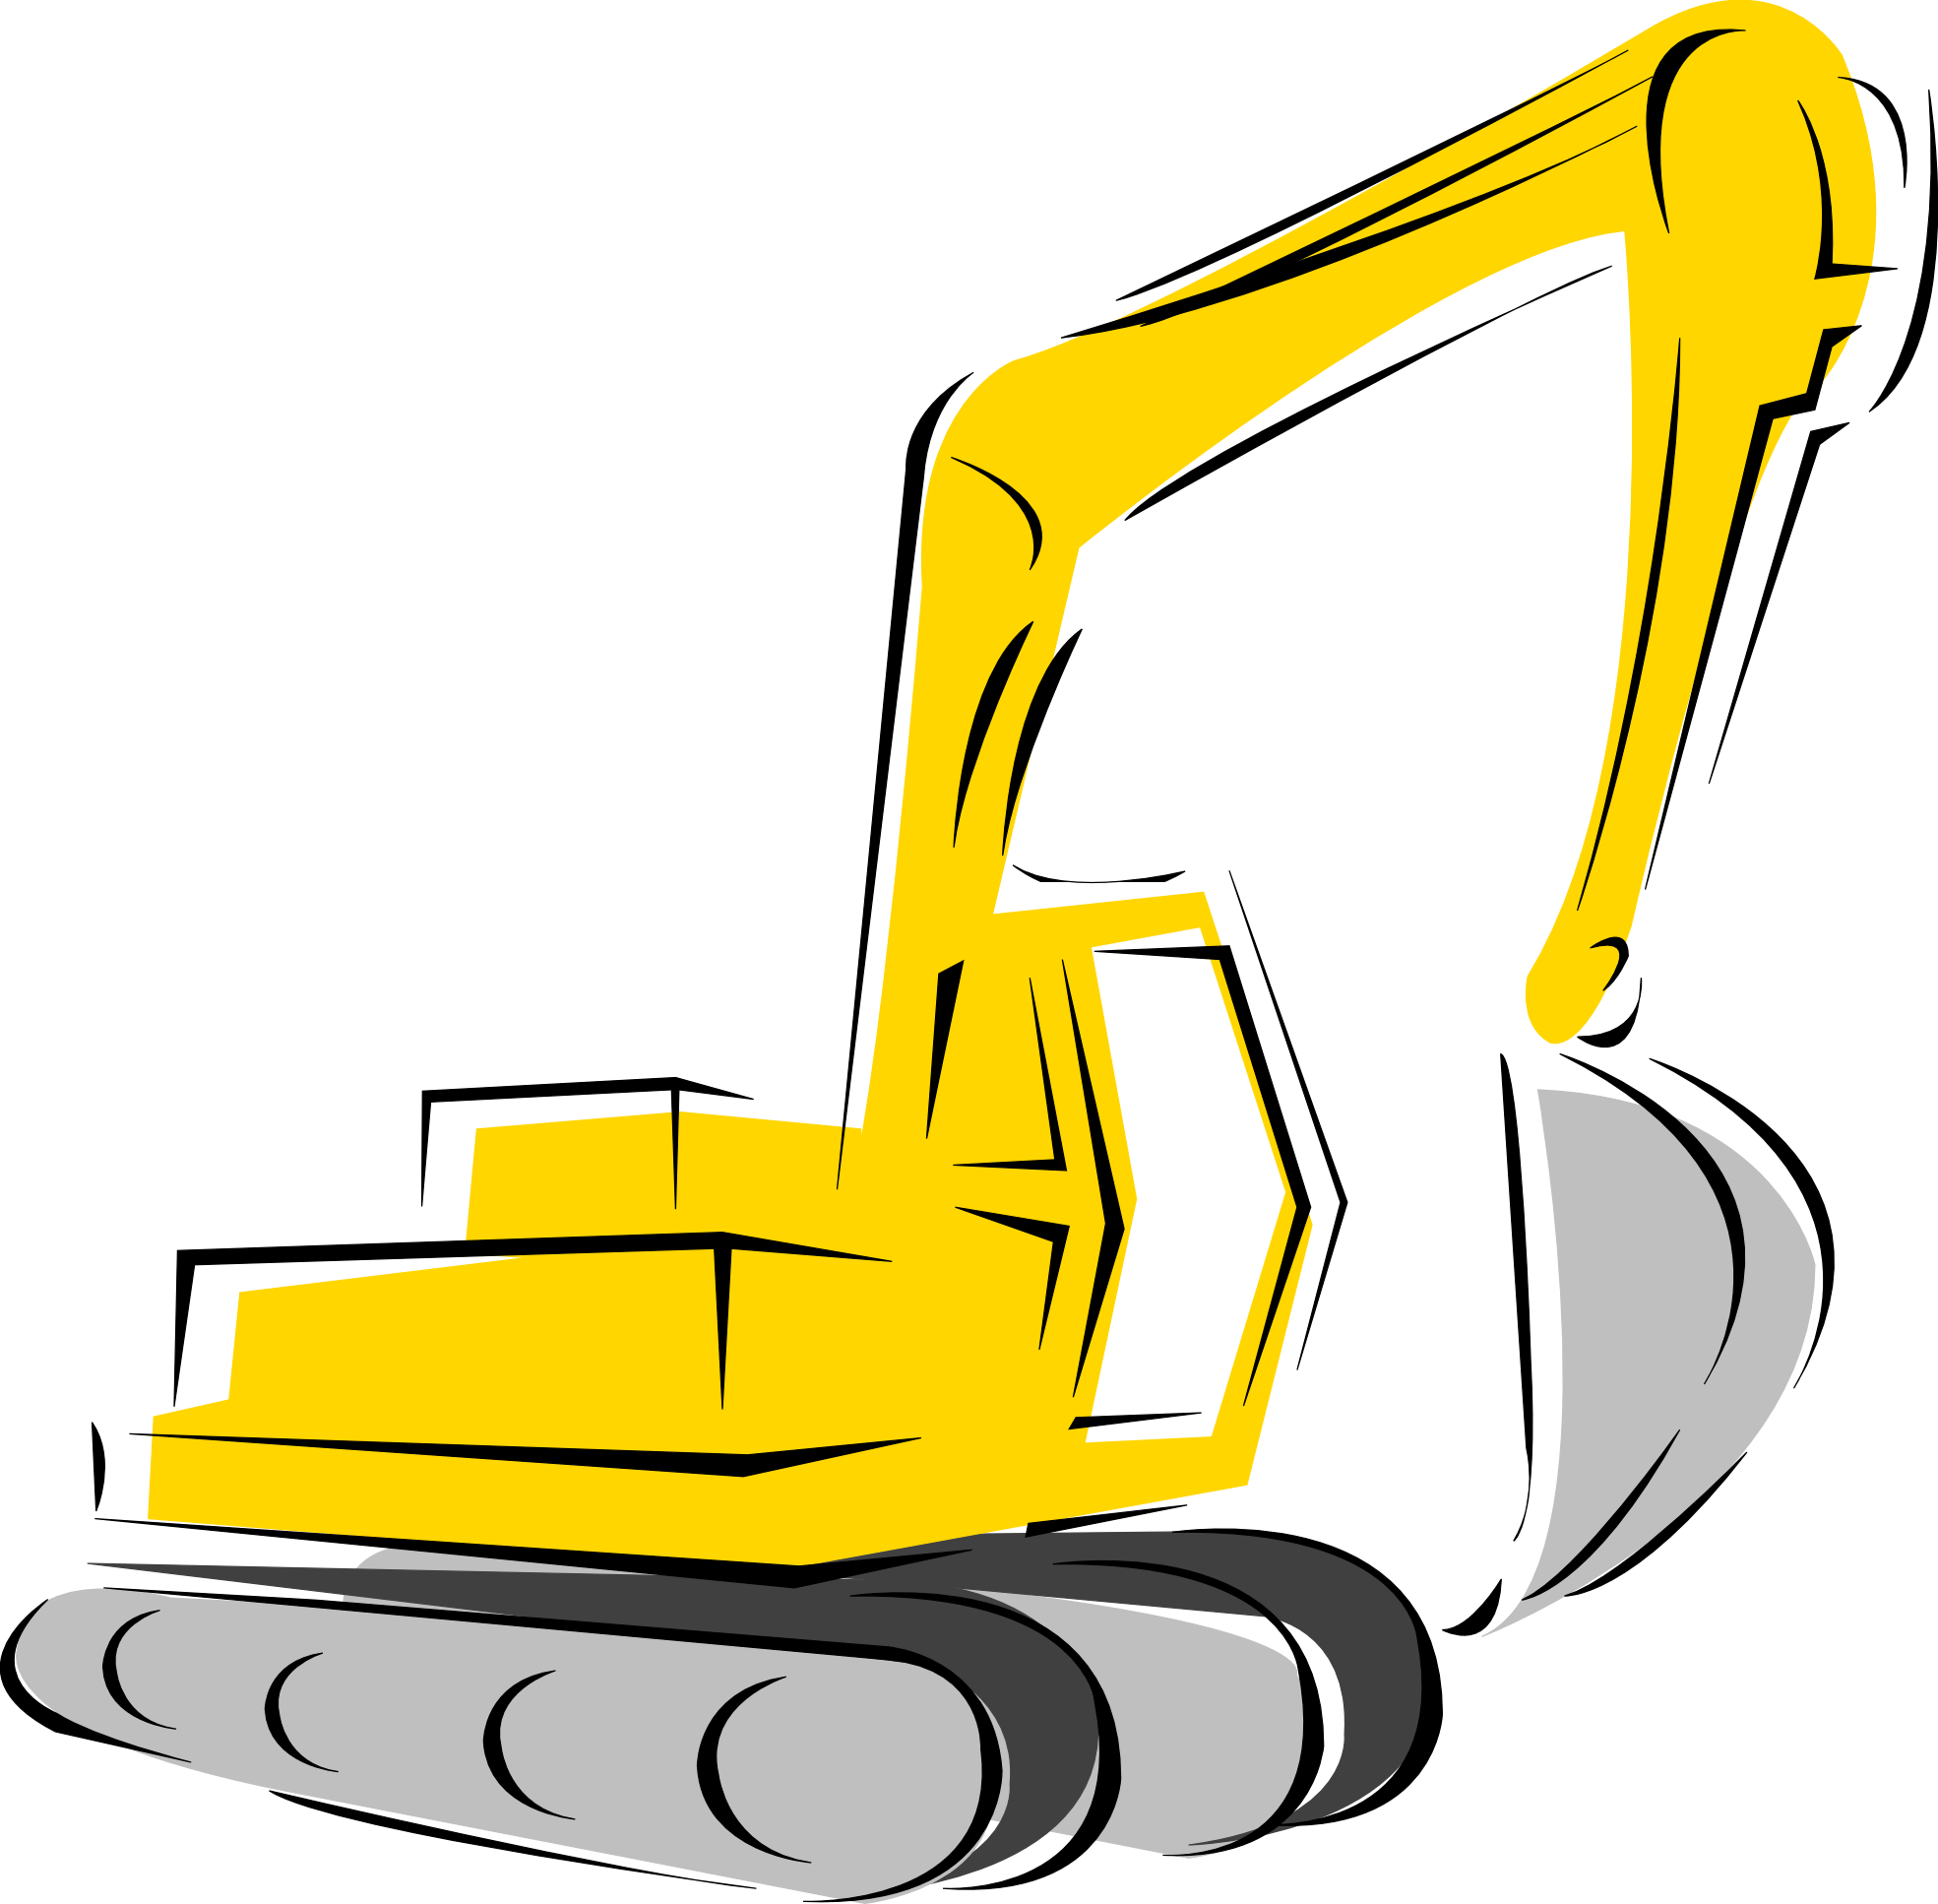 Crane clipart high rise. Image result for construction